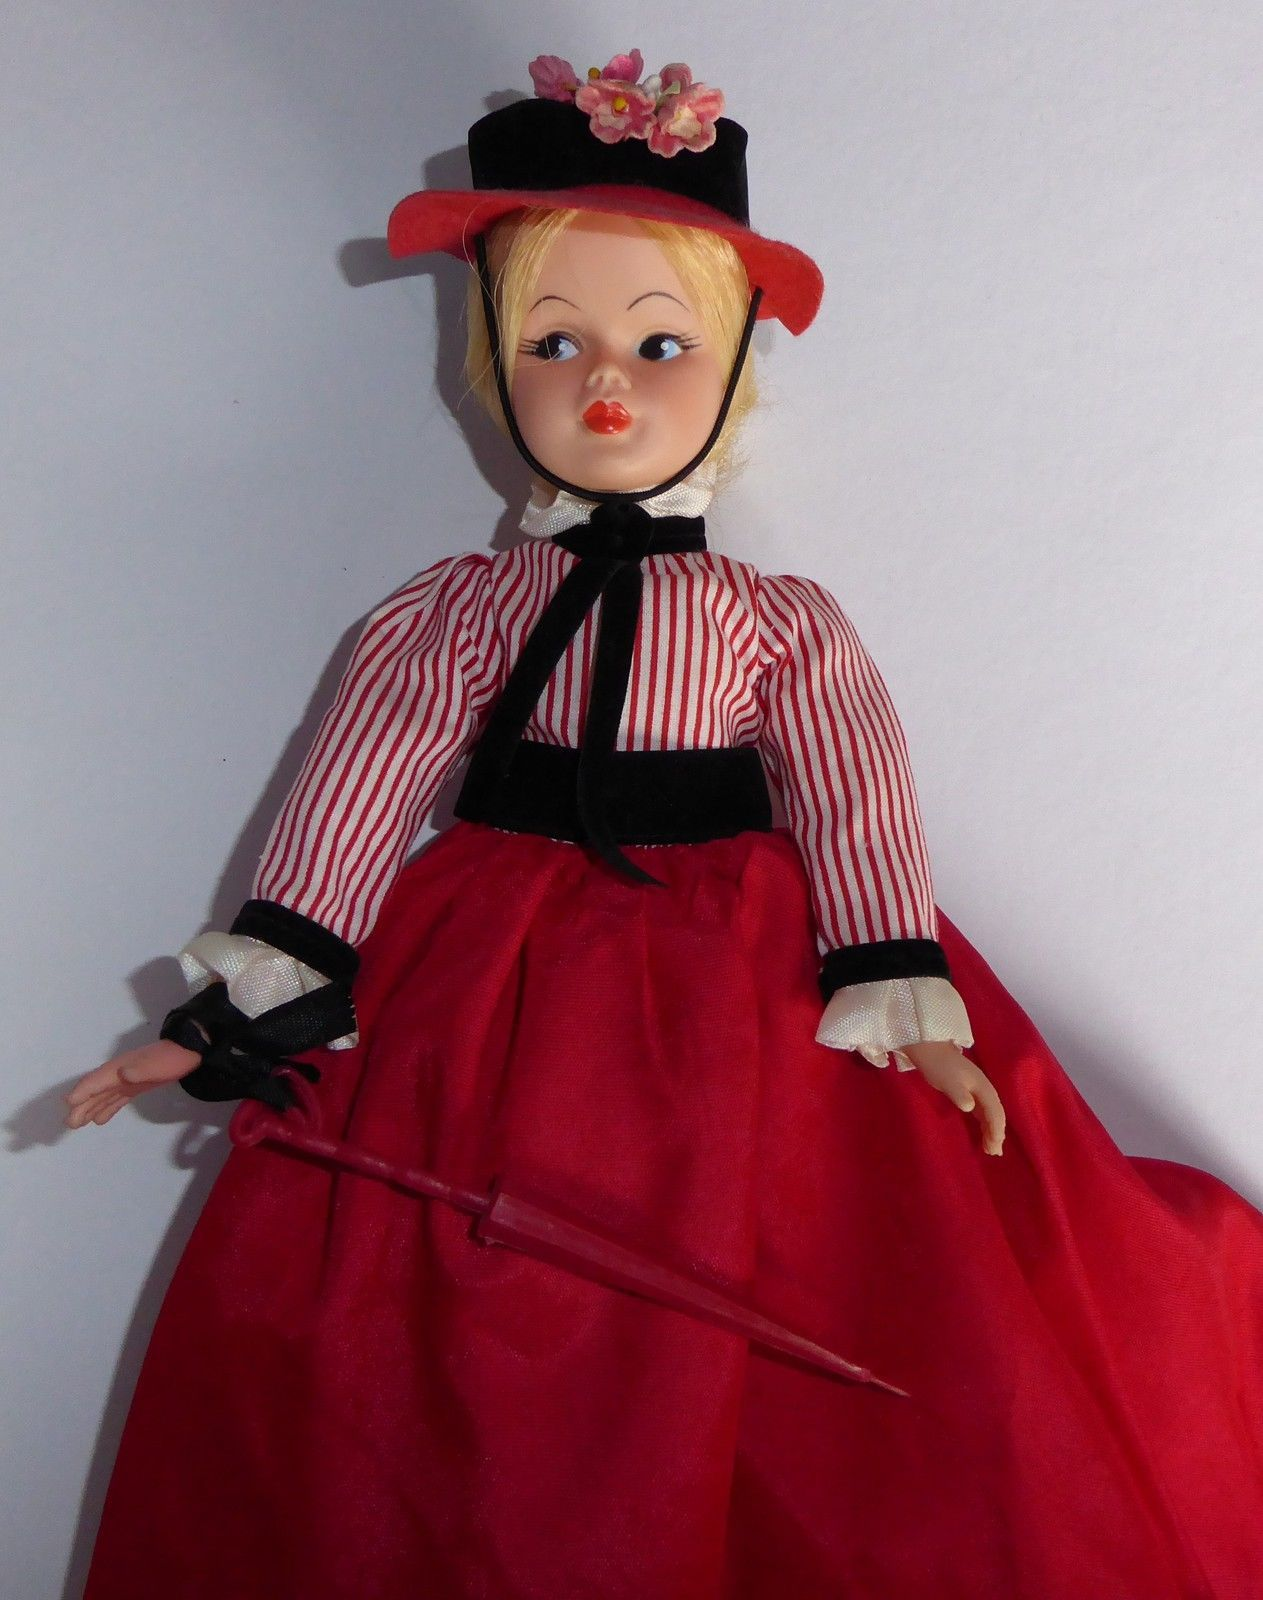 Vintage Horsman Gibson Girl like Mary Poppins doll in original outfit | eBay Mine has a Straw hat